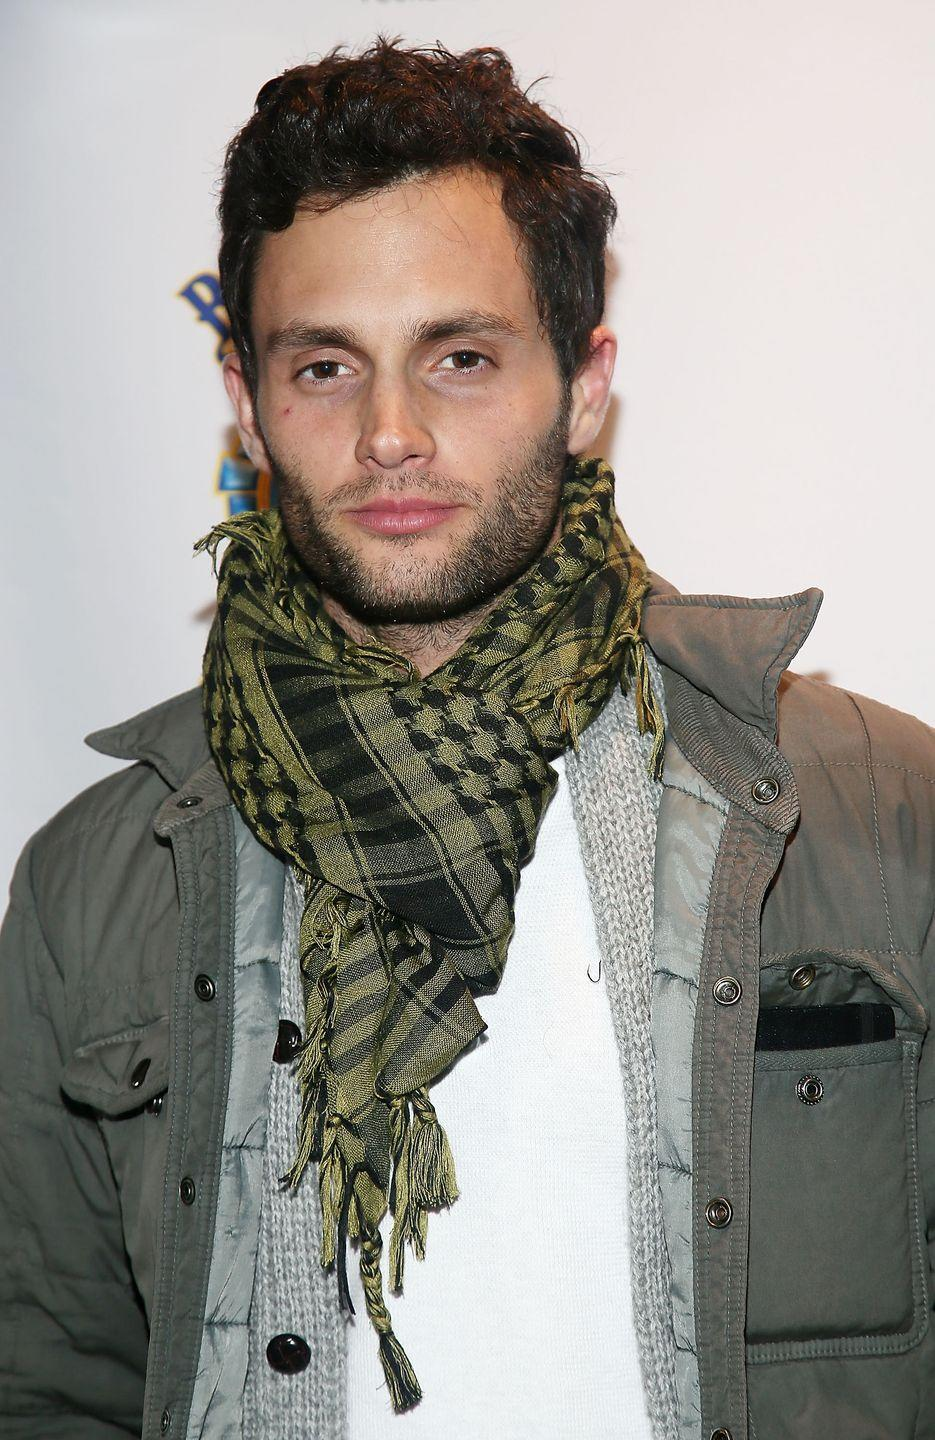 """<p>Though Badgley didn't directly state he hated his character on <em>Gossip Girl,</em> he did reference the show and its flaws on multiple occasions. He <a href=""""https://twitter.com/PennBadgley/status/558480546121392128"""" rel=""""nofollow noopener"""" target=""""_blank"""" data-ylk=""""slk:tweeted"""" class=""""link rapid-noclick-resp"""">tweeted</a> in 2015, """"Lol shit we are *reclining* on New York City. I'm posted up like its a futon. Talk about an image of white privilege."""" He also told <a href=""""https://www.salon.com/2013/04/30/a_gossip_girl_star_becomes_jeff_buckley_i_was_not_his_most_rabid_fan/"""" rel=""""nofollow noopener"""" target=""""_blank"""" data-ylk=""""slk:Salon"""" class=""""link rapid-noclick-resp"""">Salon</a> back in 2013, """"To be proud of something is a really nice feeling...and it's a new feeling. It's something that I wanna keep going with."""" (<em>Gossip Girl</em> aired from 2007–2012.) </p>"""